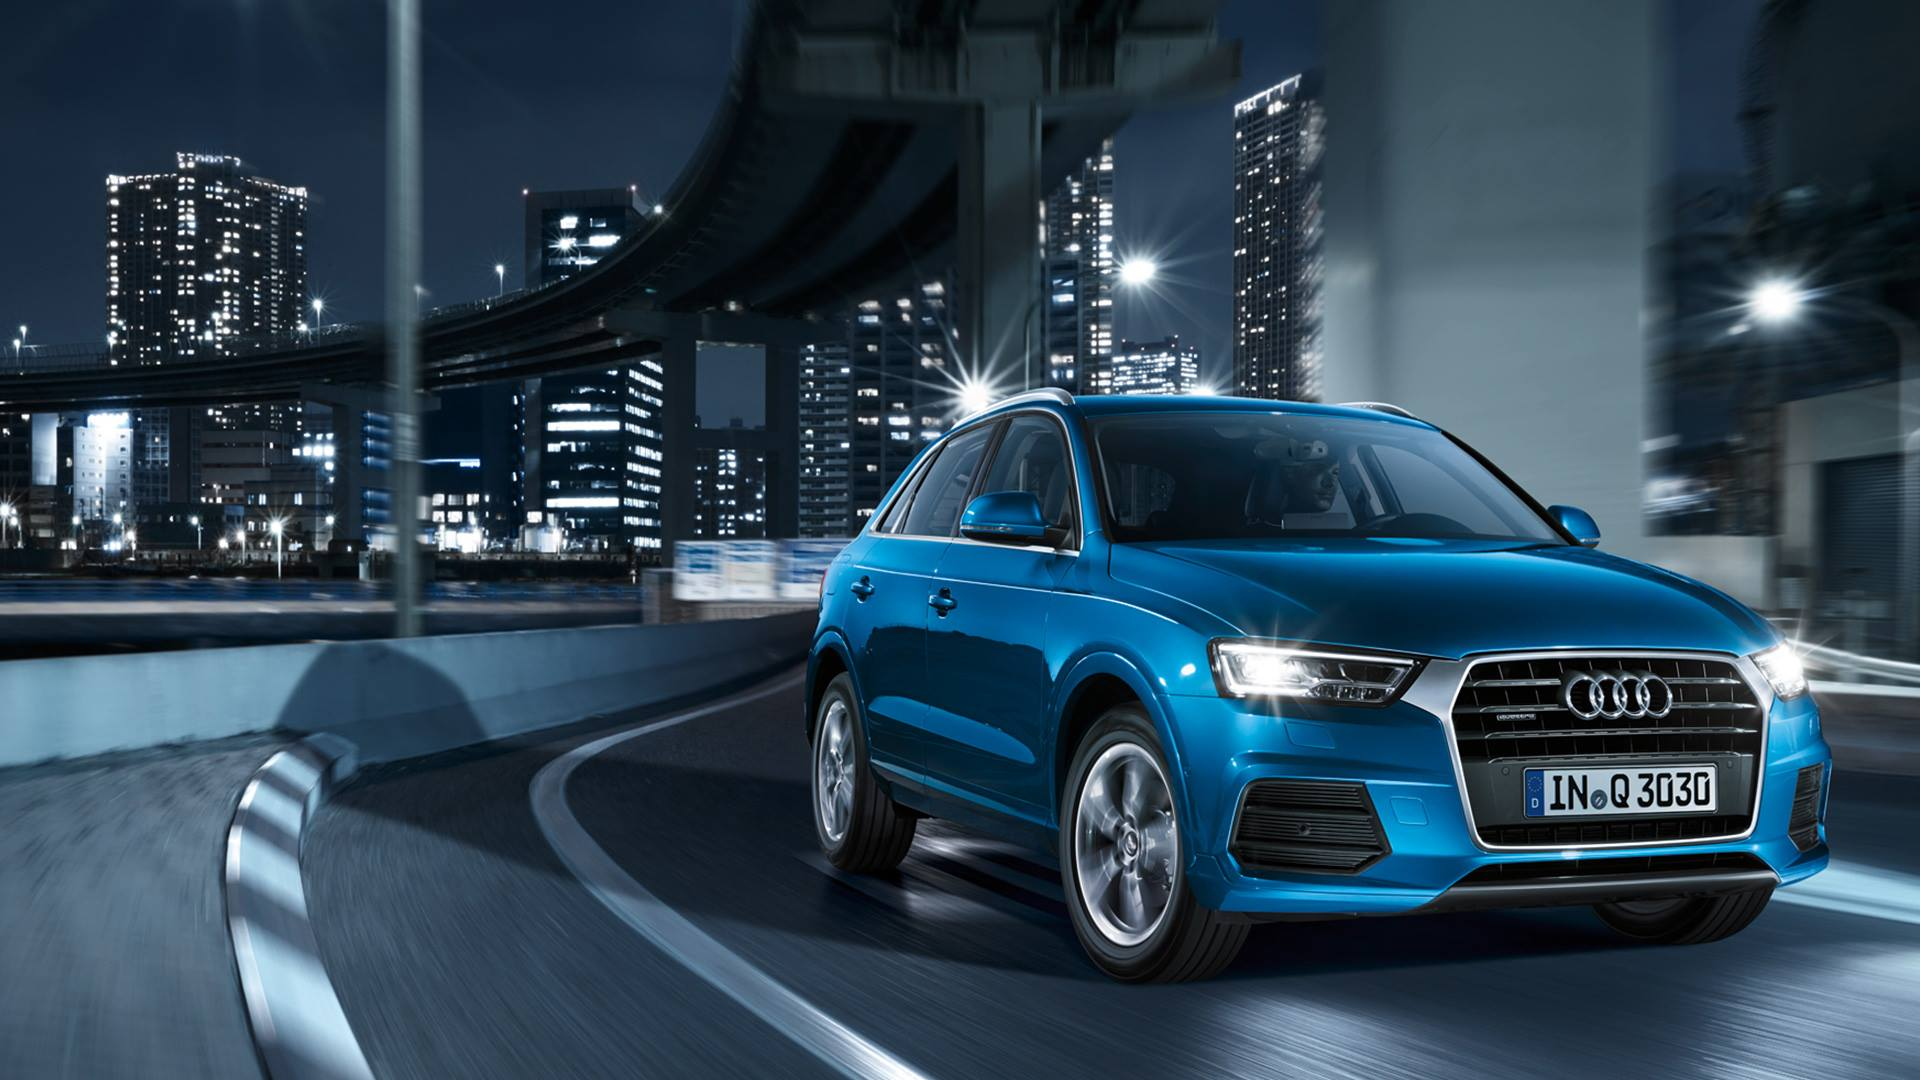 2016 audi q3 price increases to 33 700 due to facelift updates autoevolution. Black Bedroom Furniture Sets. Home Design Ideas